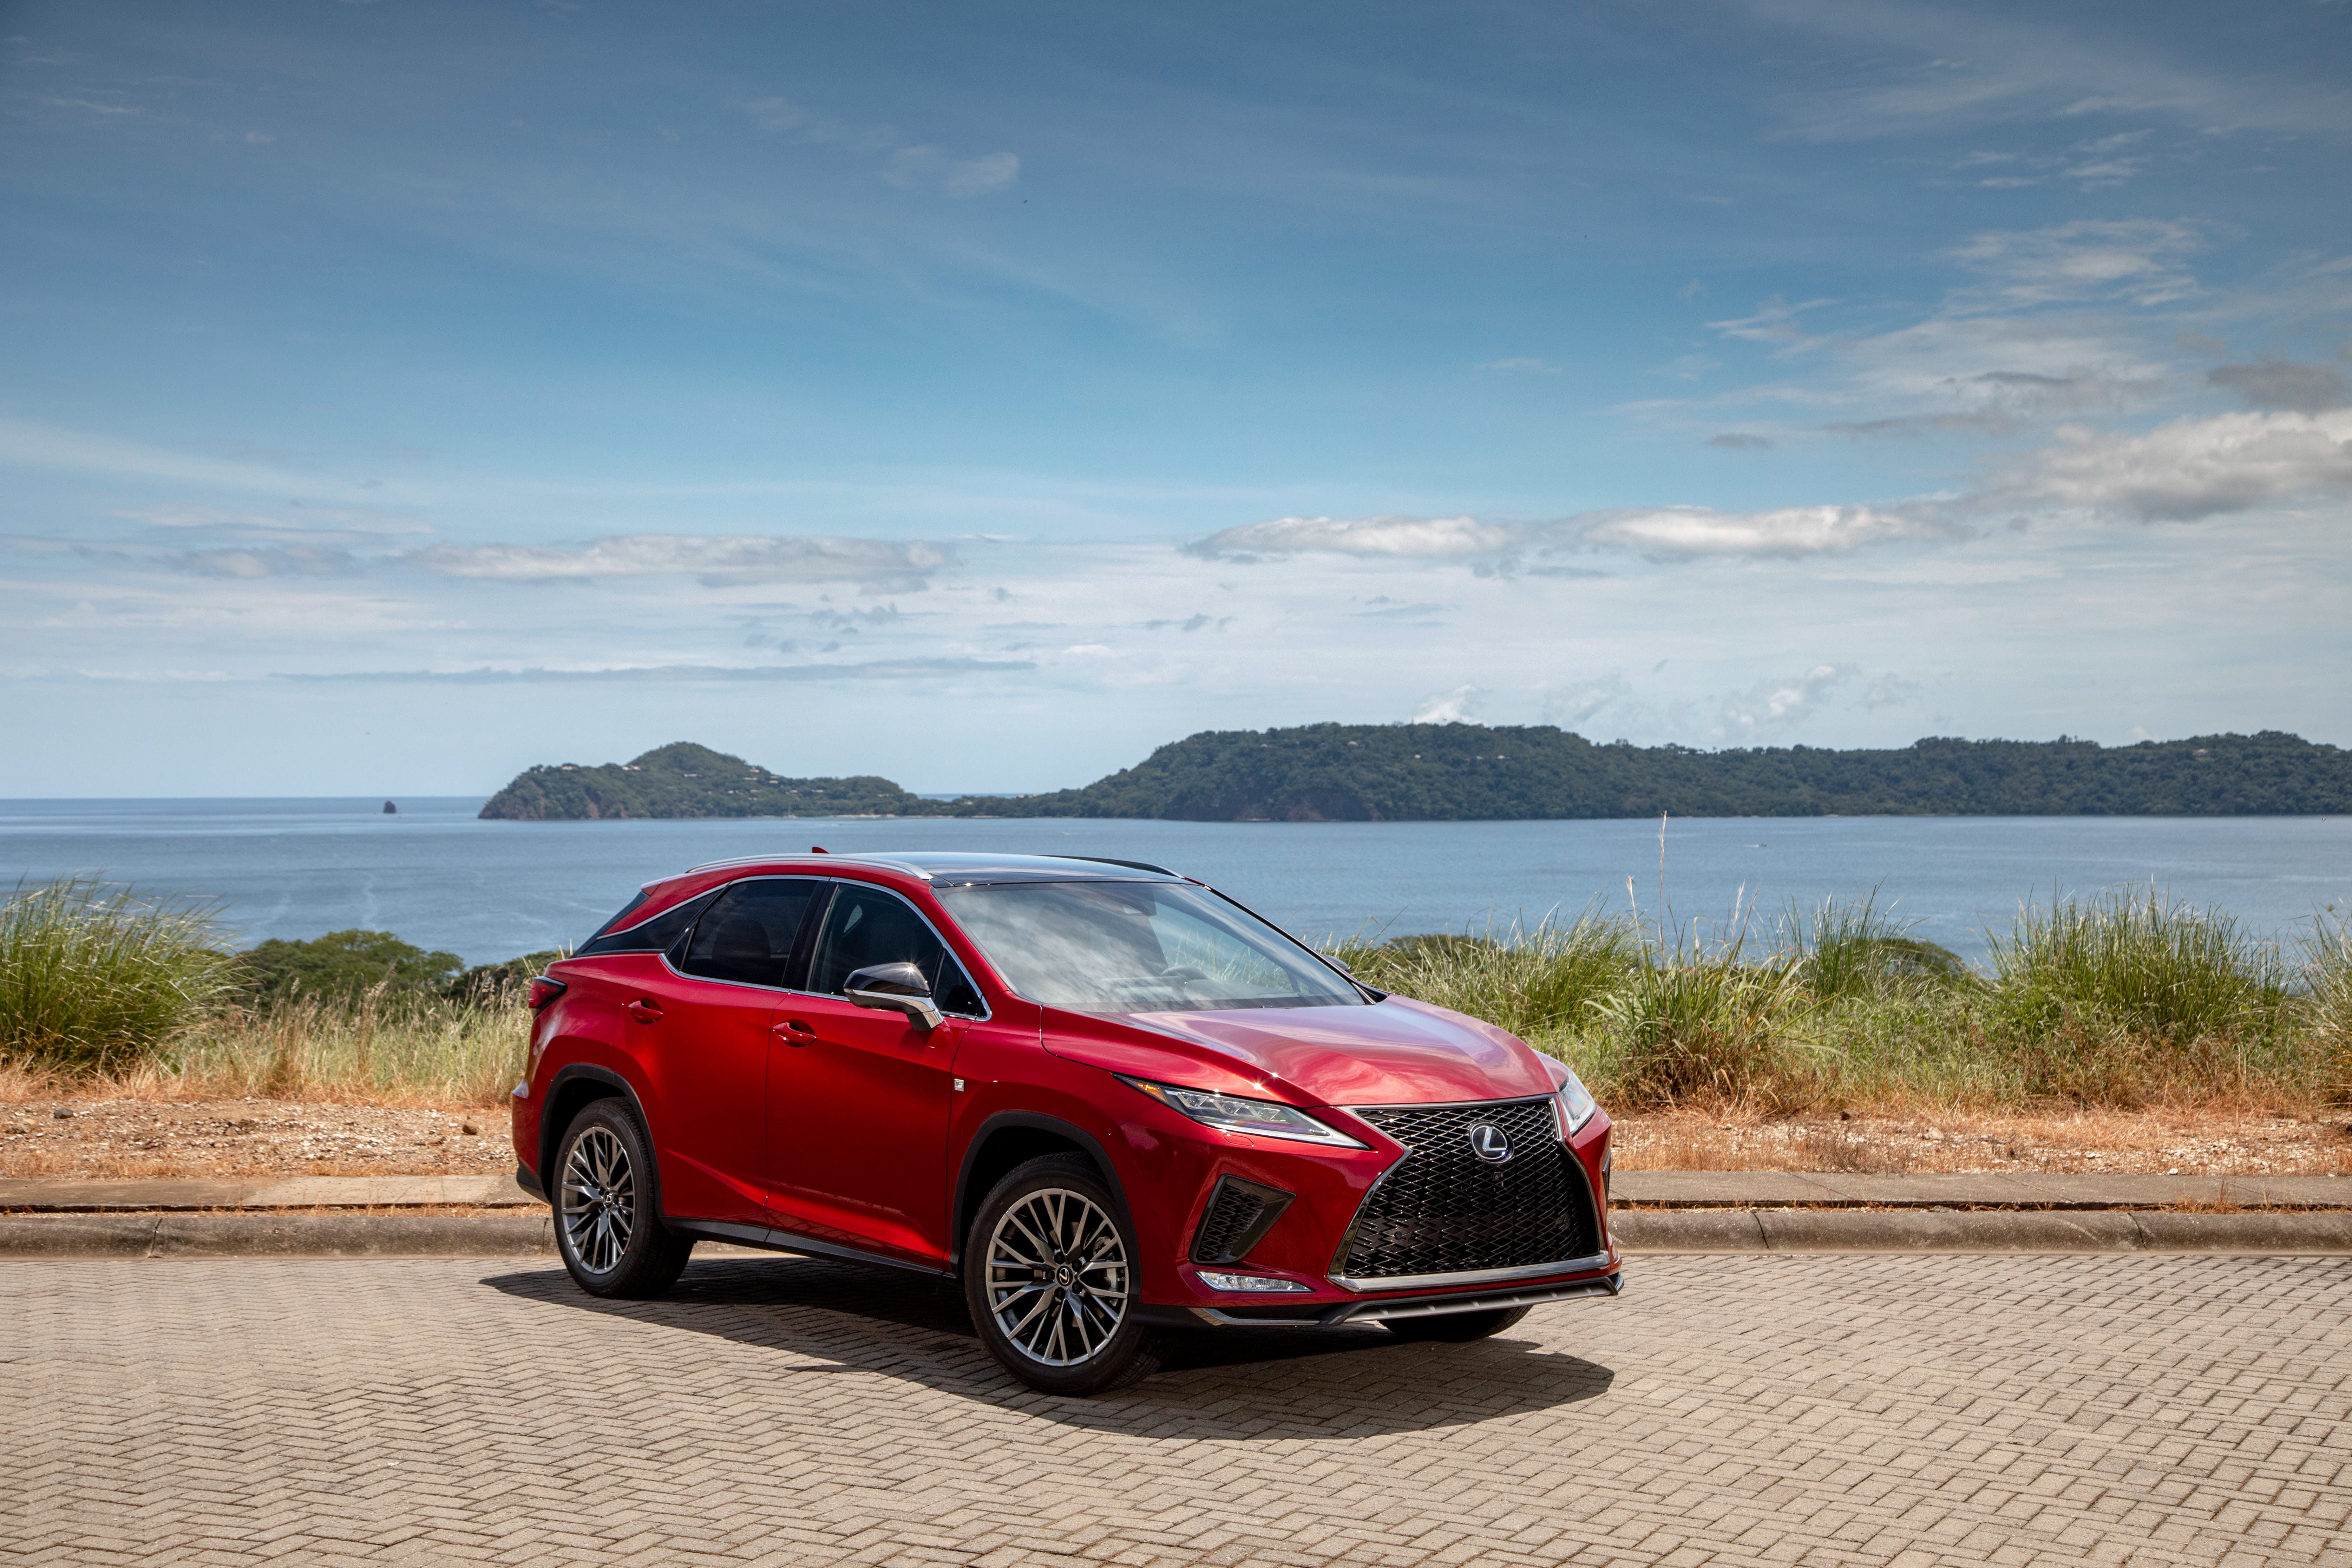 2020 Lexus RX Review, Pricing, and Specs